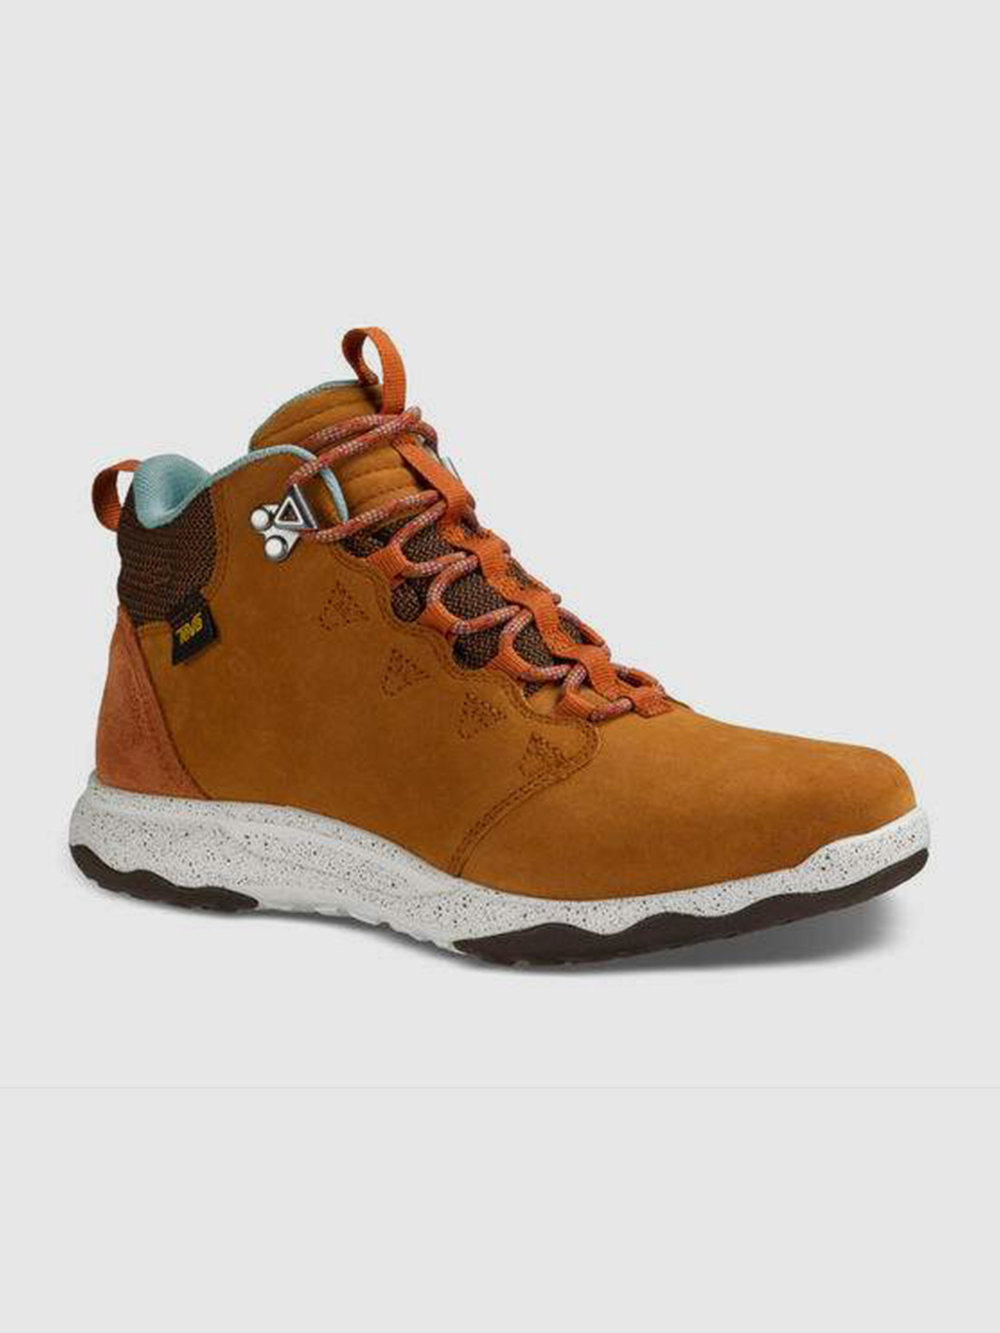 Teva Light Hiking Boots - $160